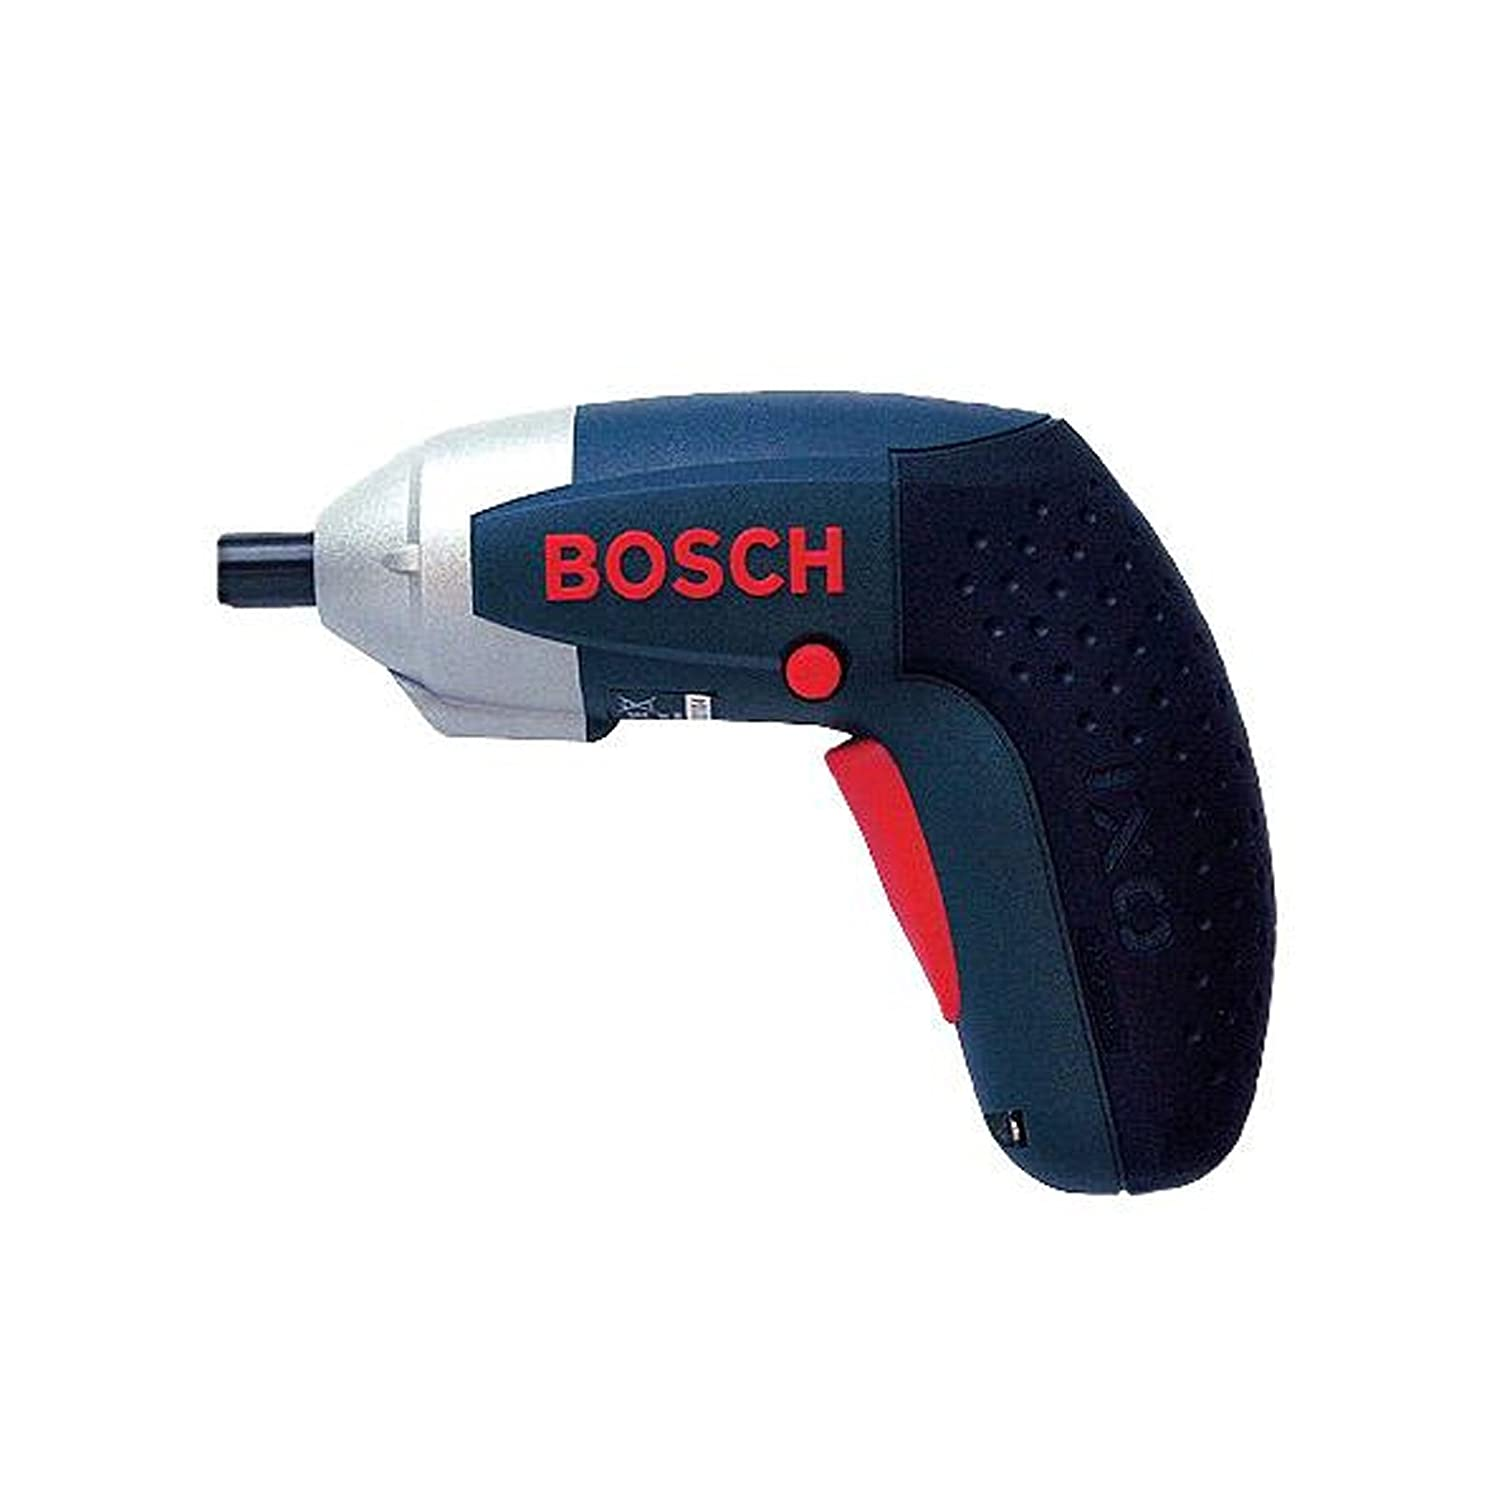 mini power drill. amazon.com: new bosch ixo iii 3.6v mini cordless electric screwdriver drill with charger ~usps express: home improvement power s